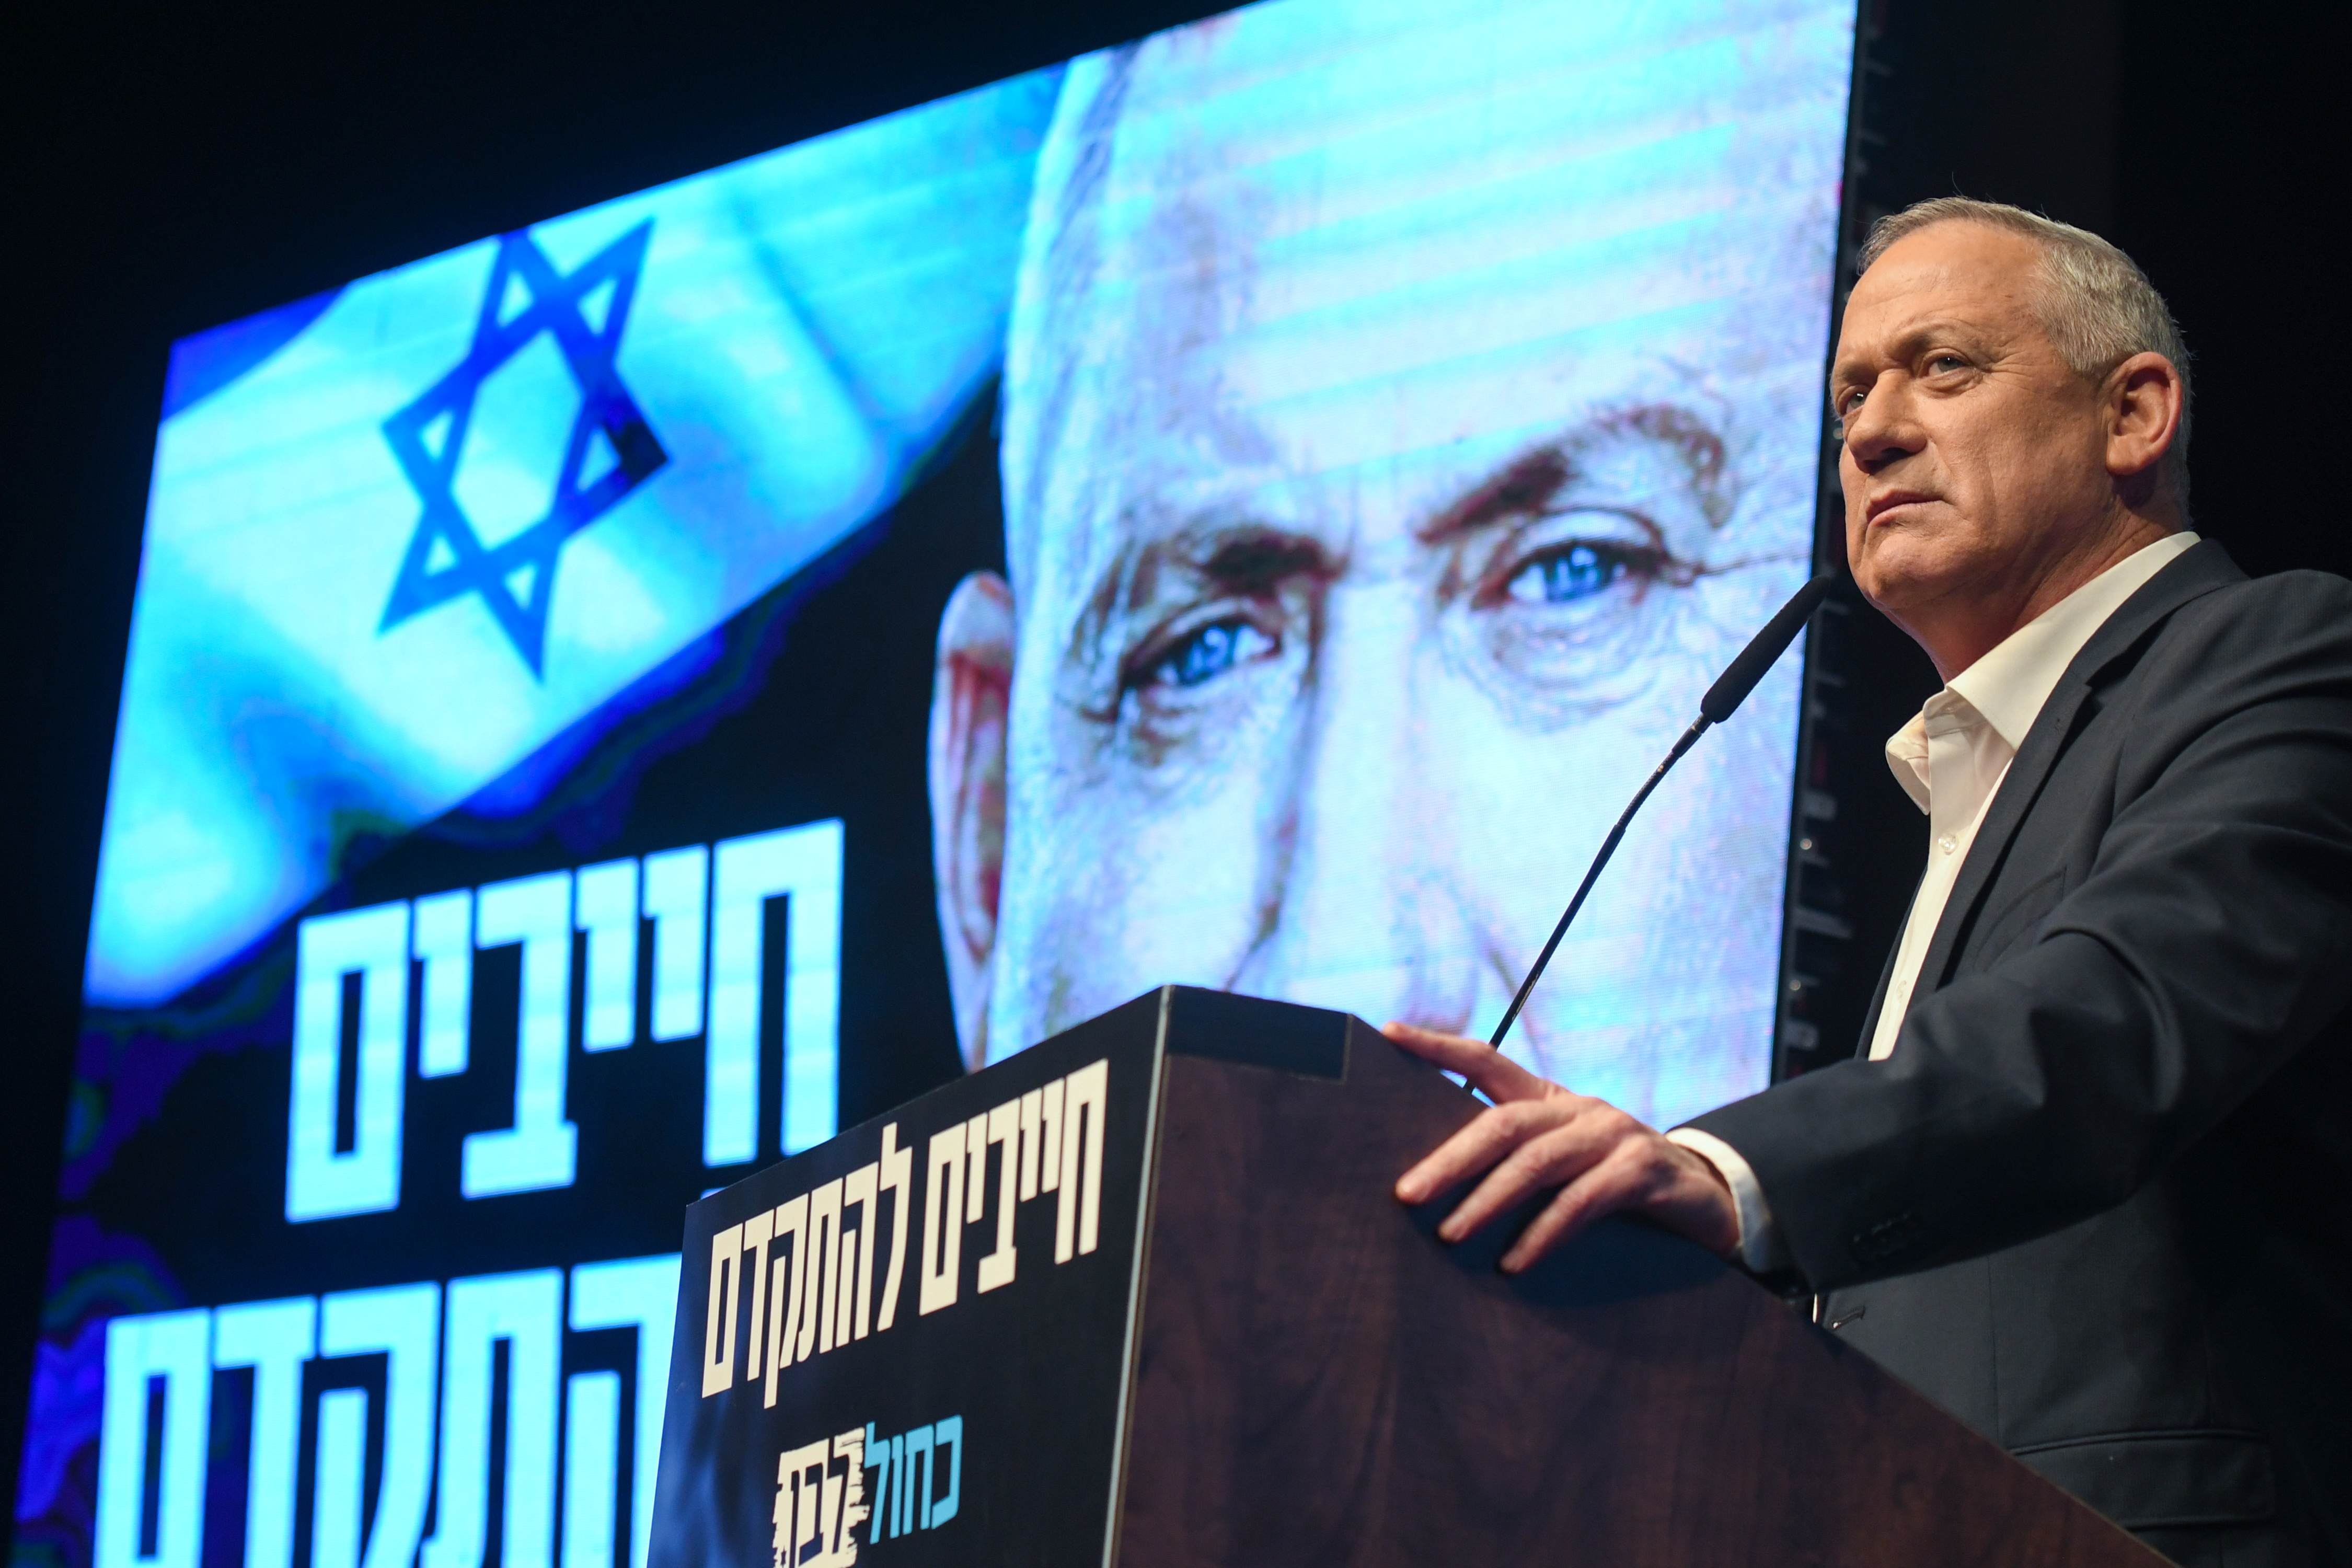 Benny Gantz, leader of Blue and White party, during an election campaign event in Ramat Gan, near Tel Aviv on February 25, 2020.